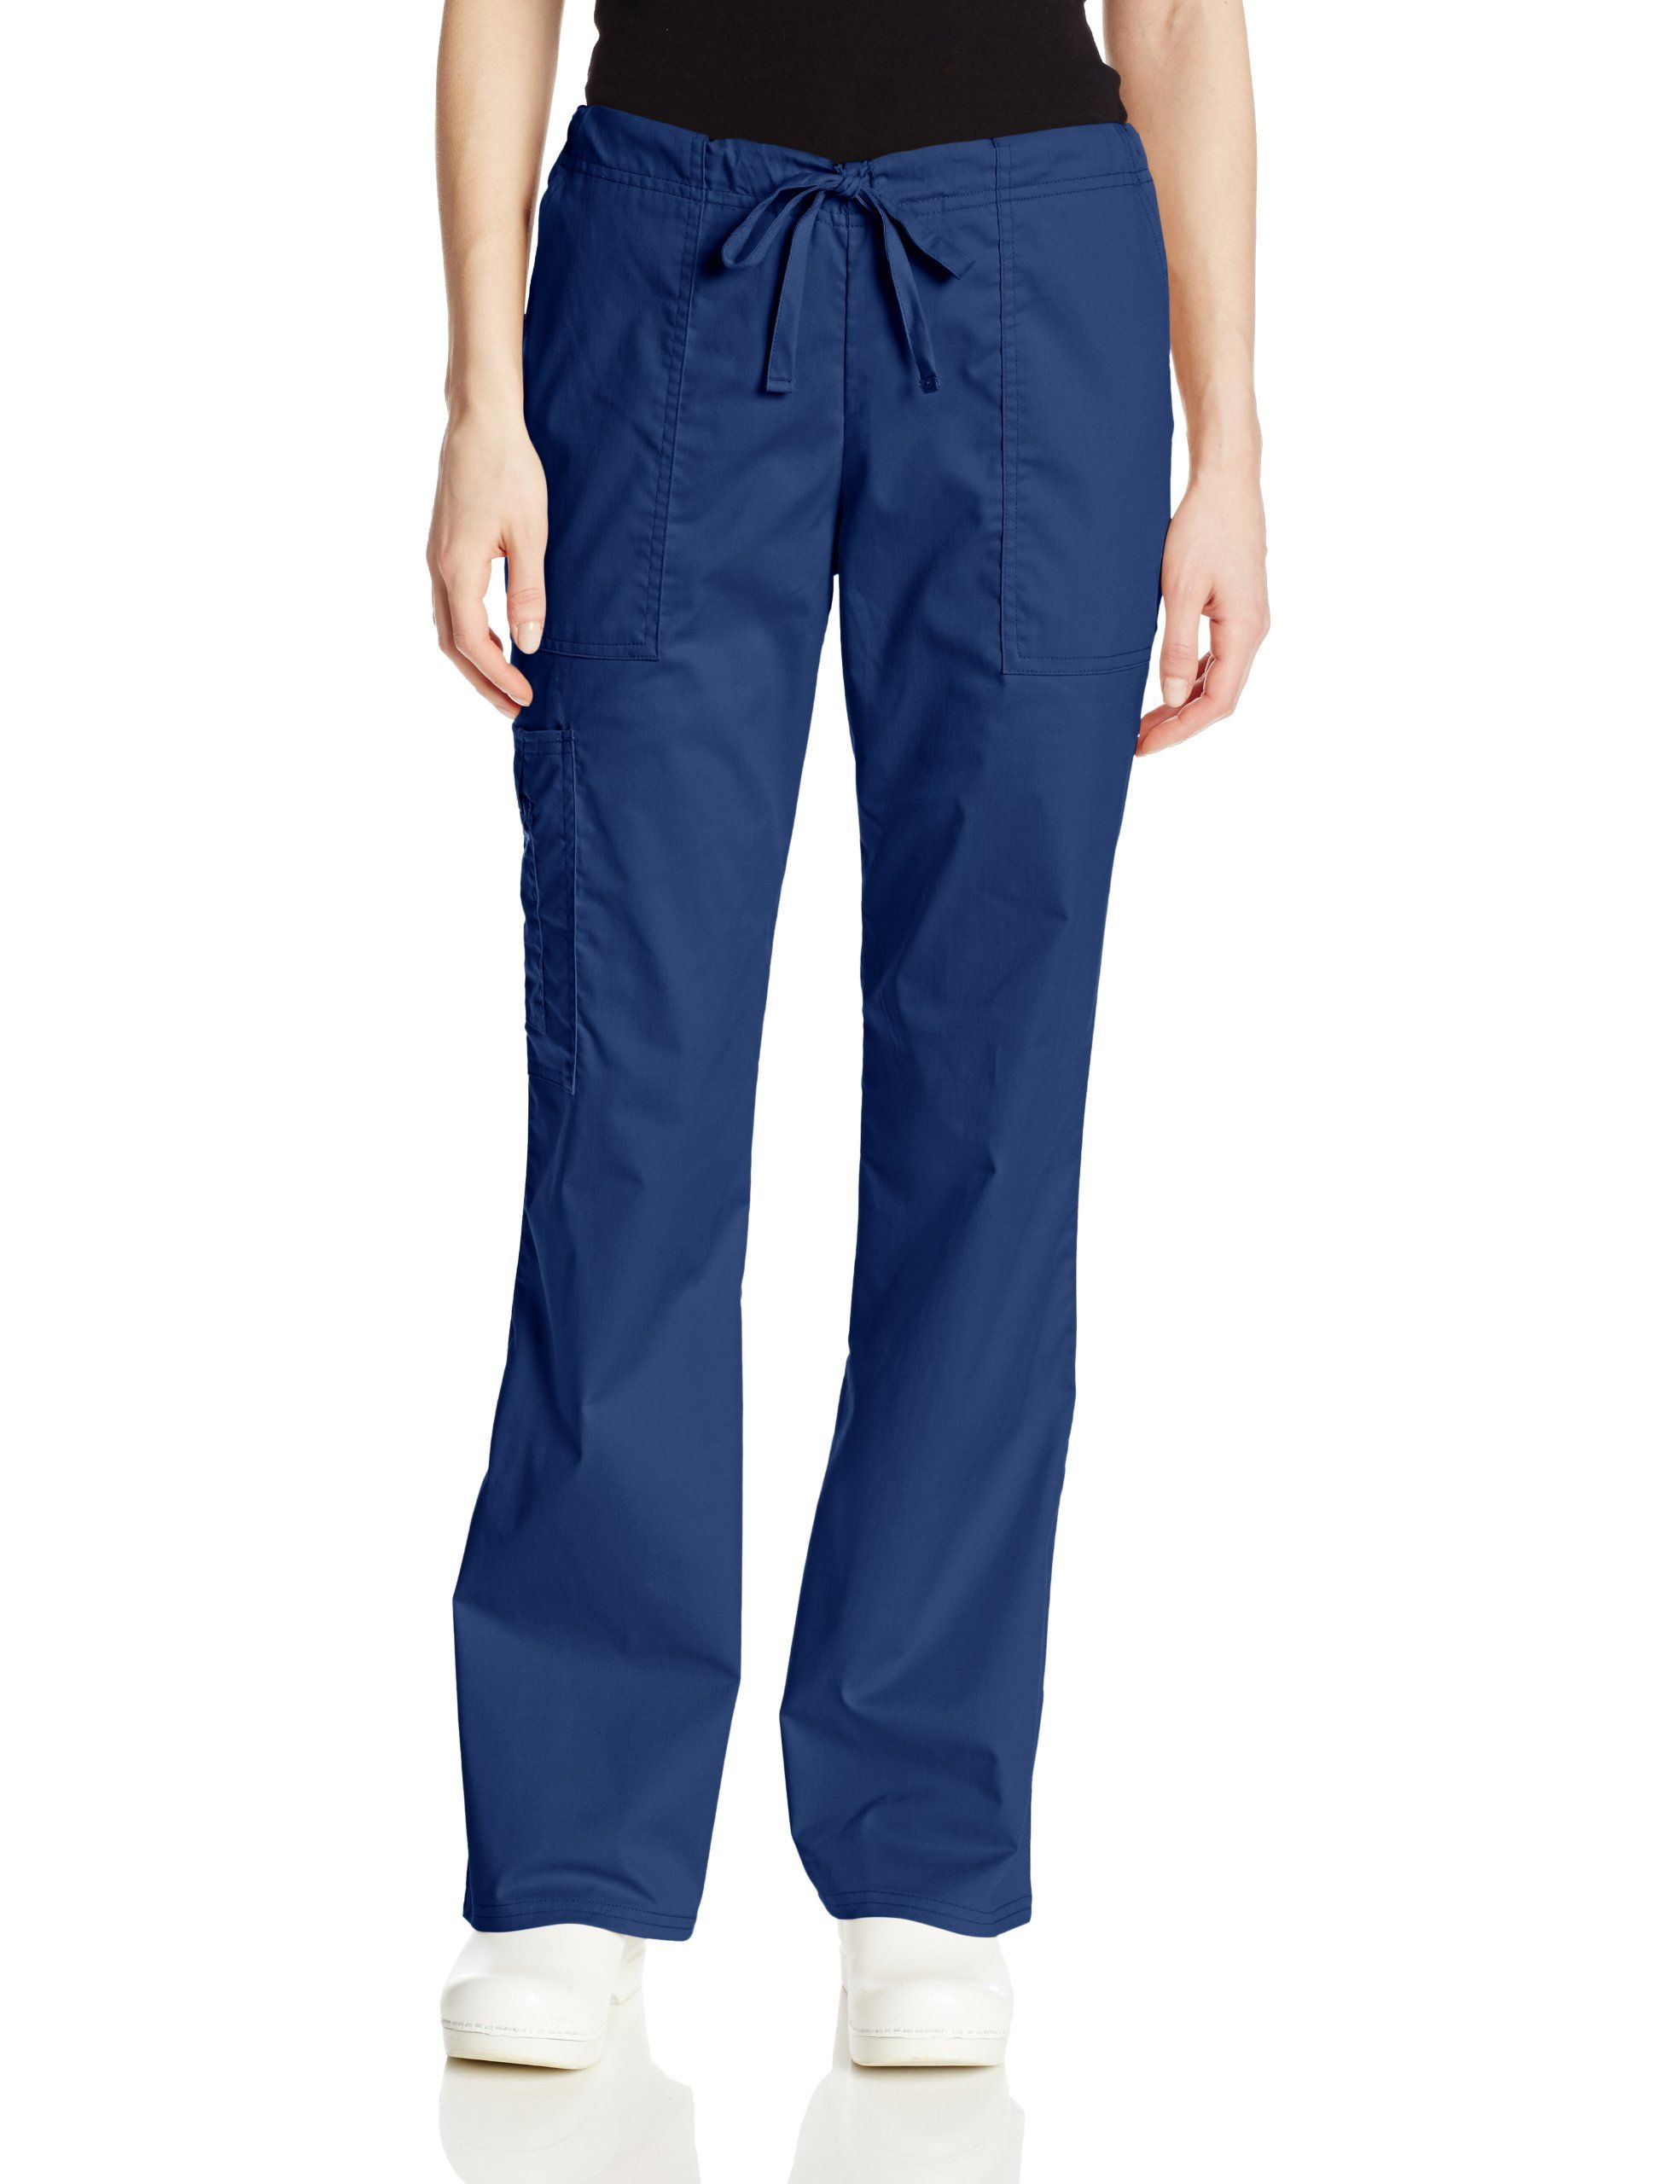 687bc6c4c09 Amazon.com: Cherokee Women's Workwear Scrubs Mid-Rise Core Stretch  Drawstring Cargo Pant: Clothing